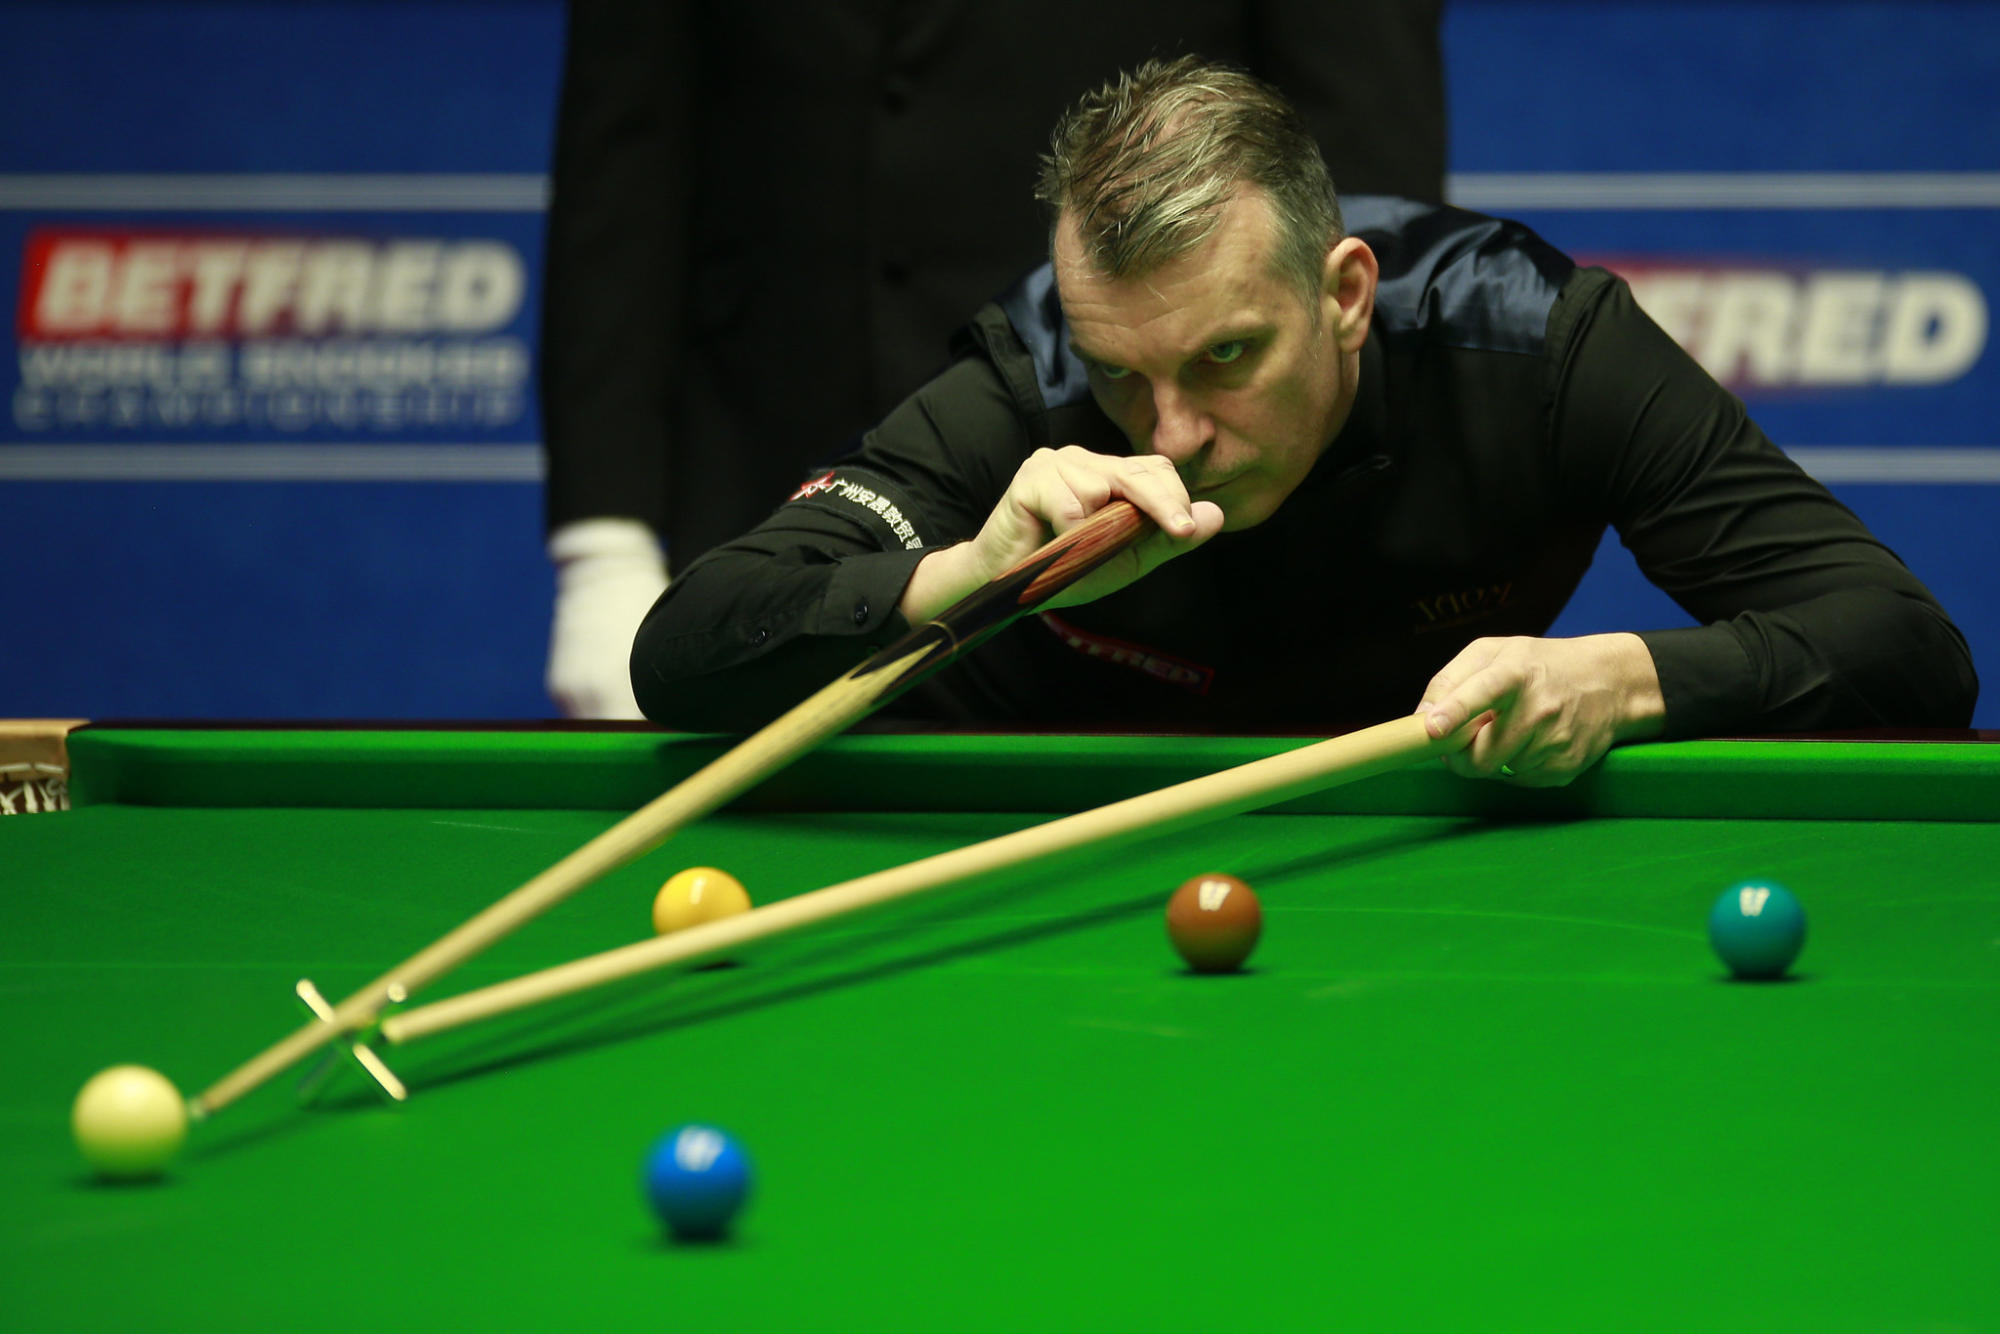 candid-snooker-star-davis:-i'm-the-most-mentally-weak-player-in-the-world